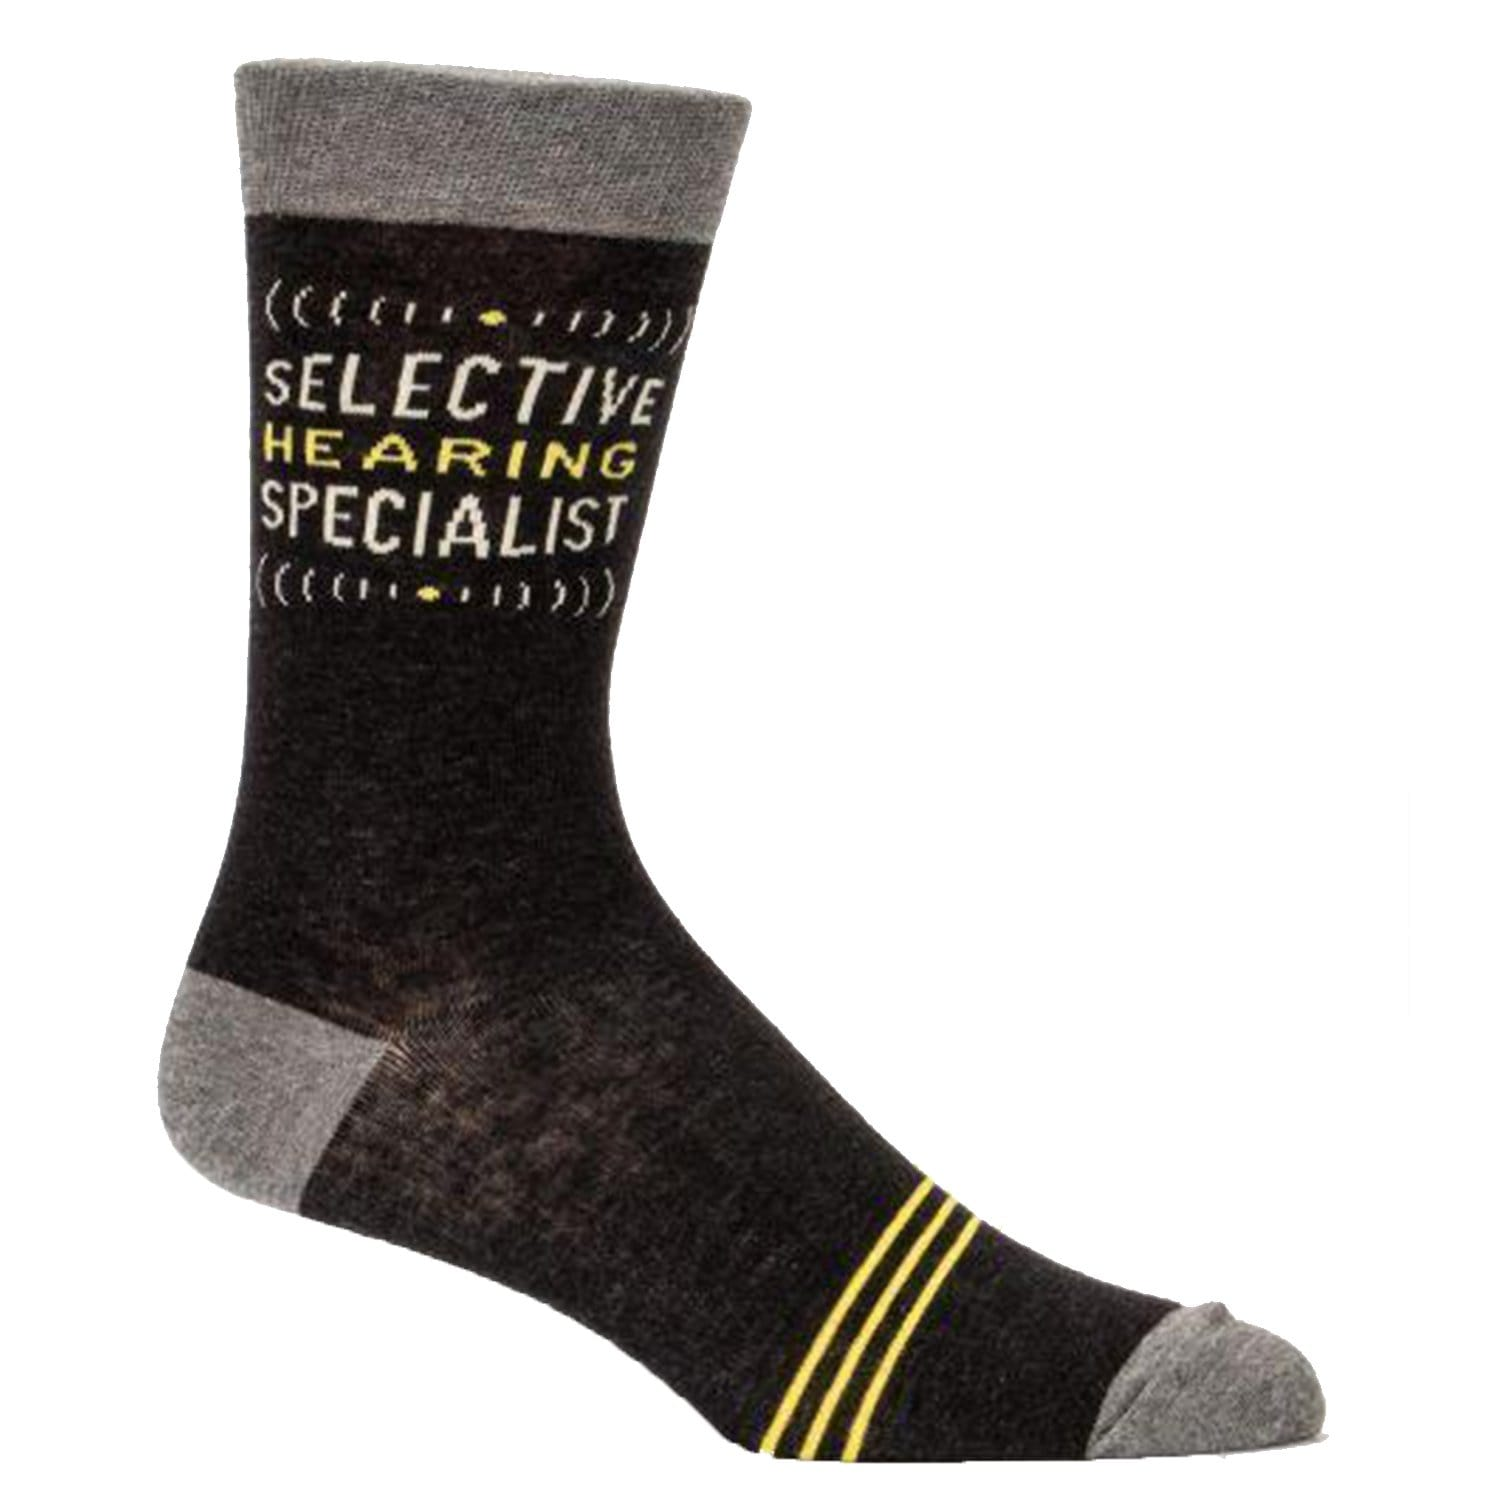 Selective Hearing Specialist Sock Men's Crew Socks black